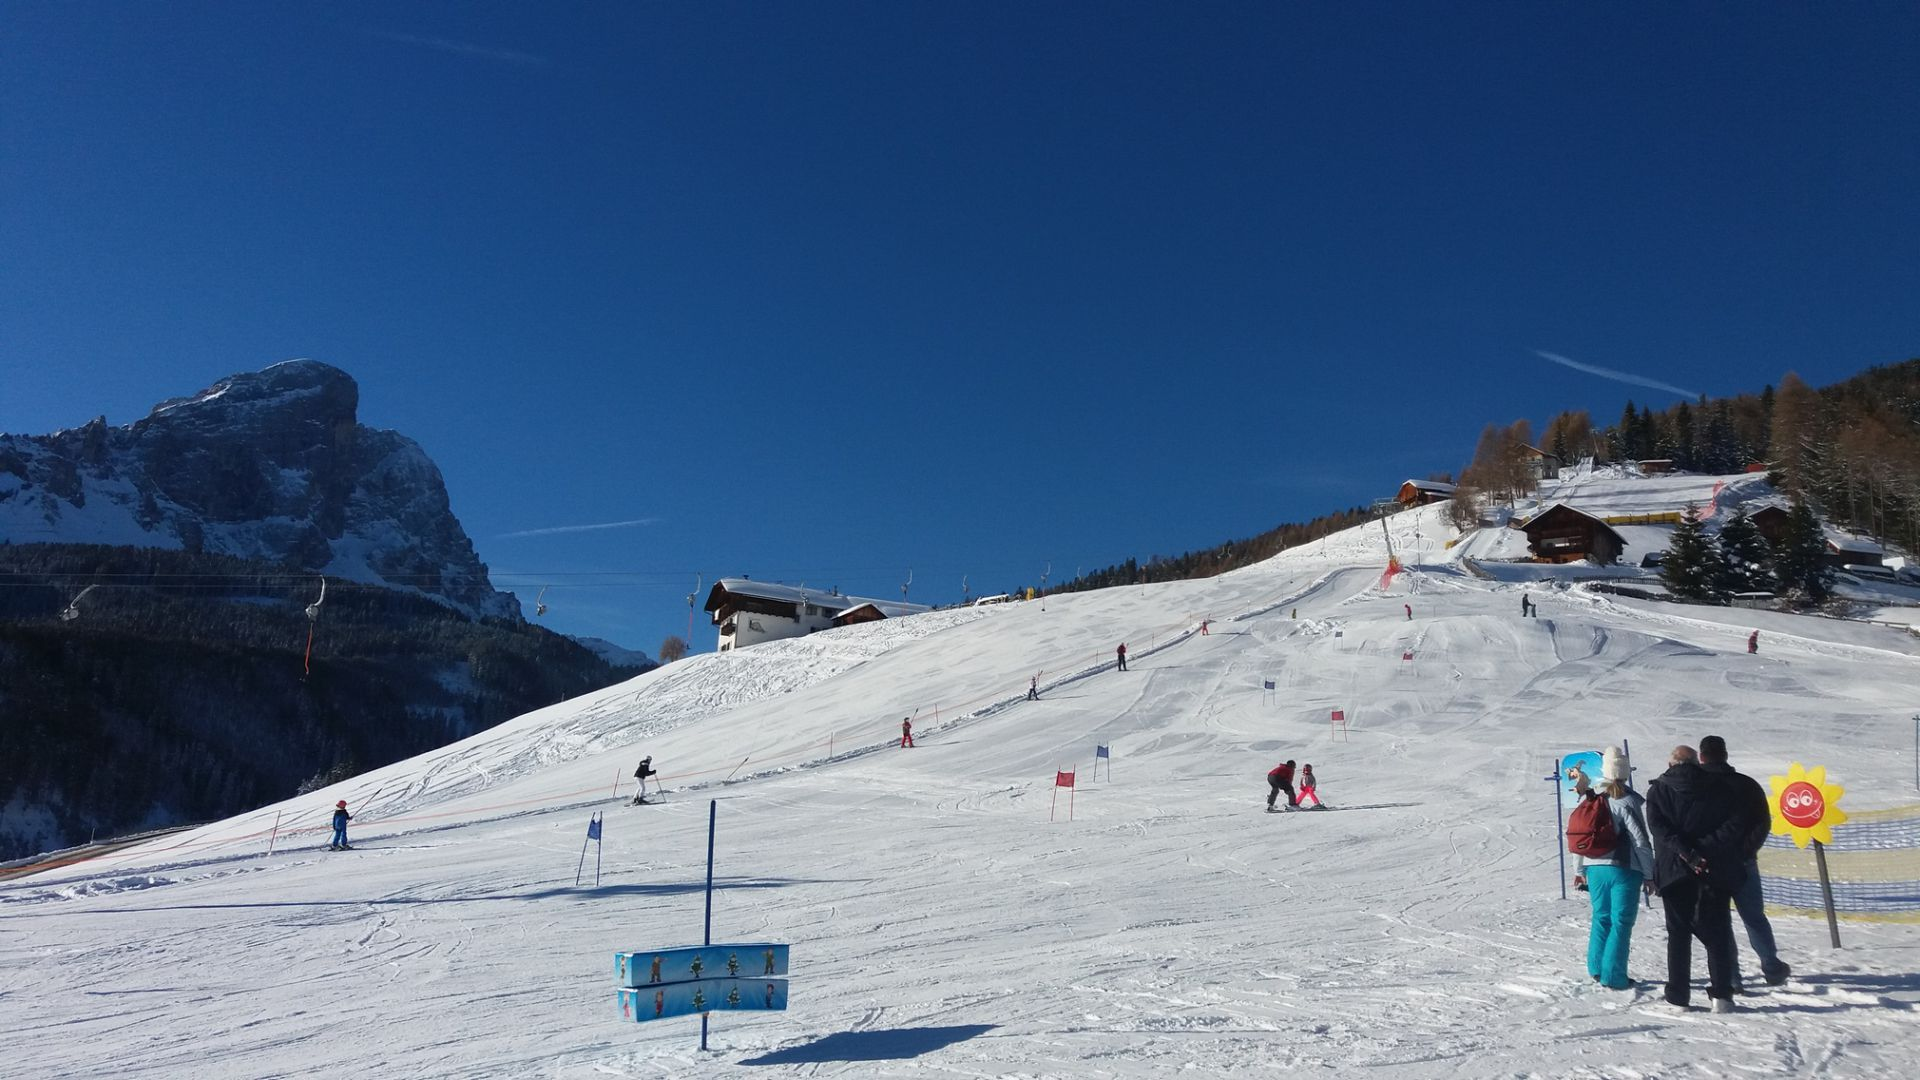 Image: Skiing in Antermoia